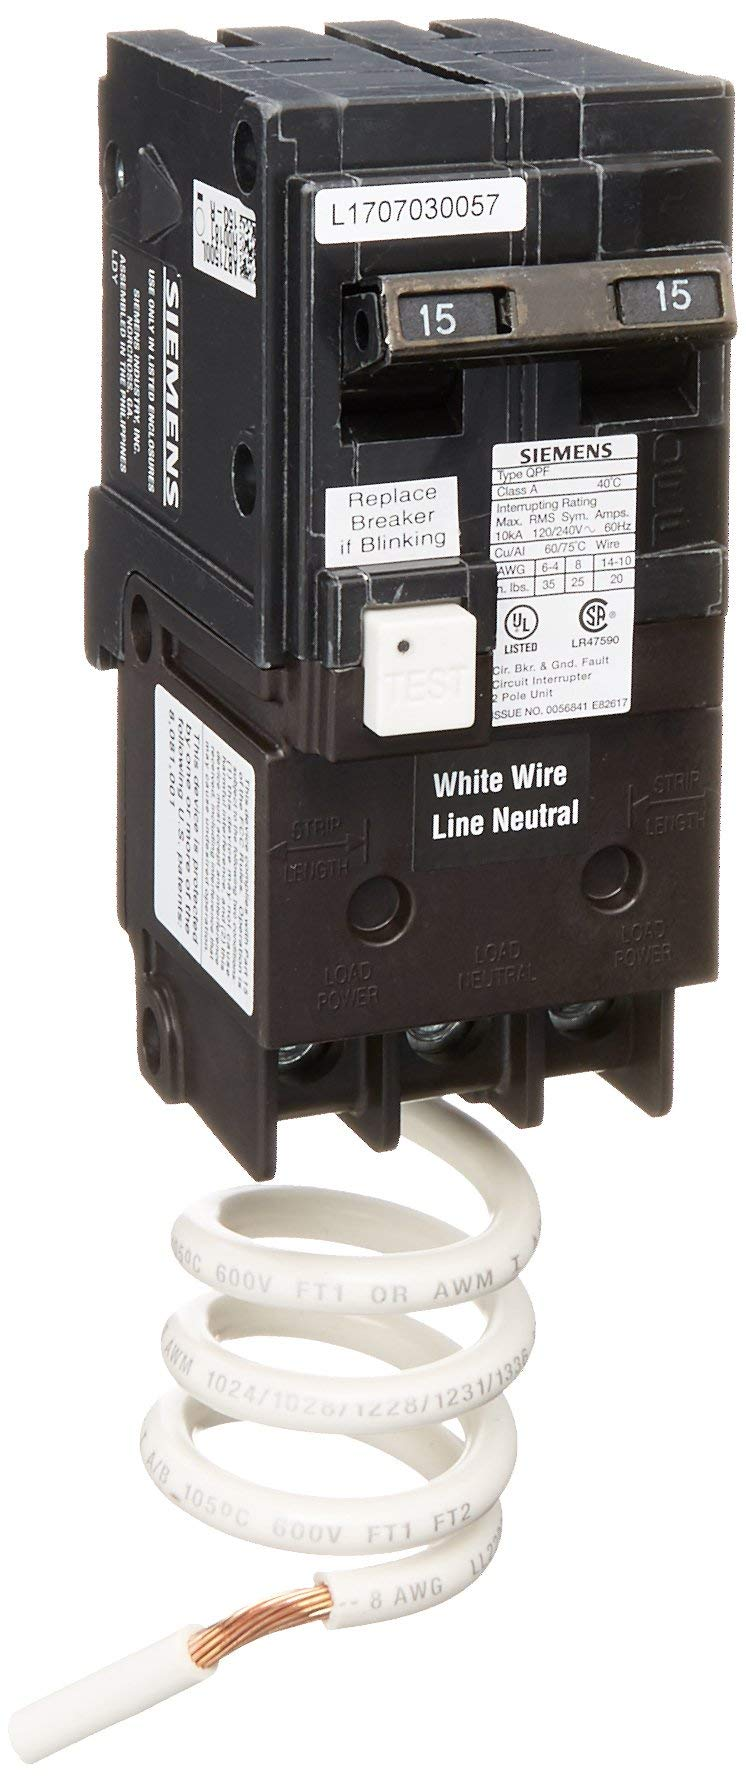 Siemens QF215A Ground Fault Circuit Interrupter, 15 Amp, 2 Pole, 120V, 10,000 Aic, (Renewed)